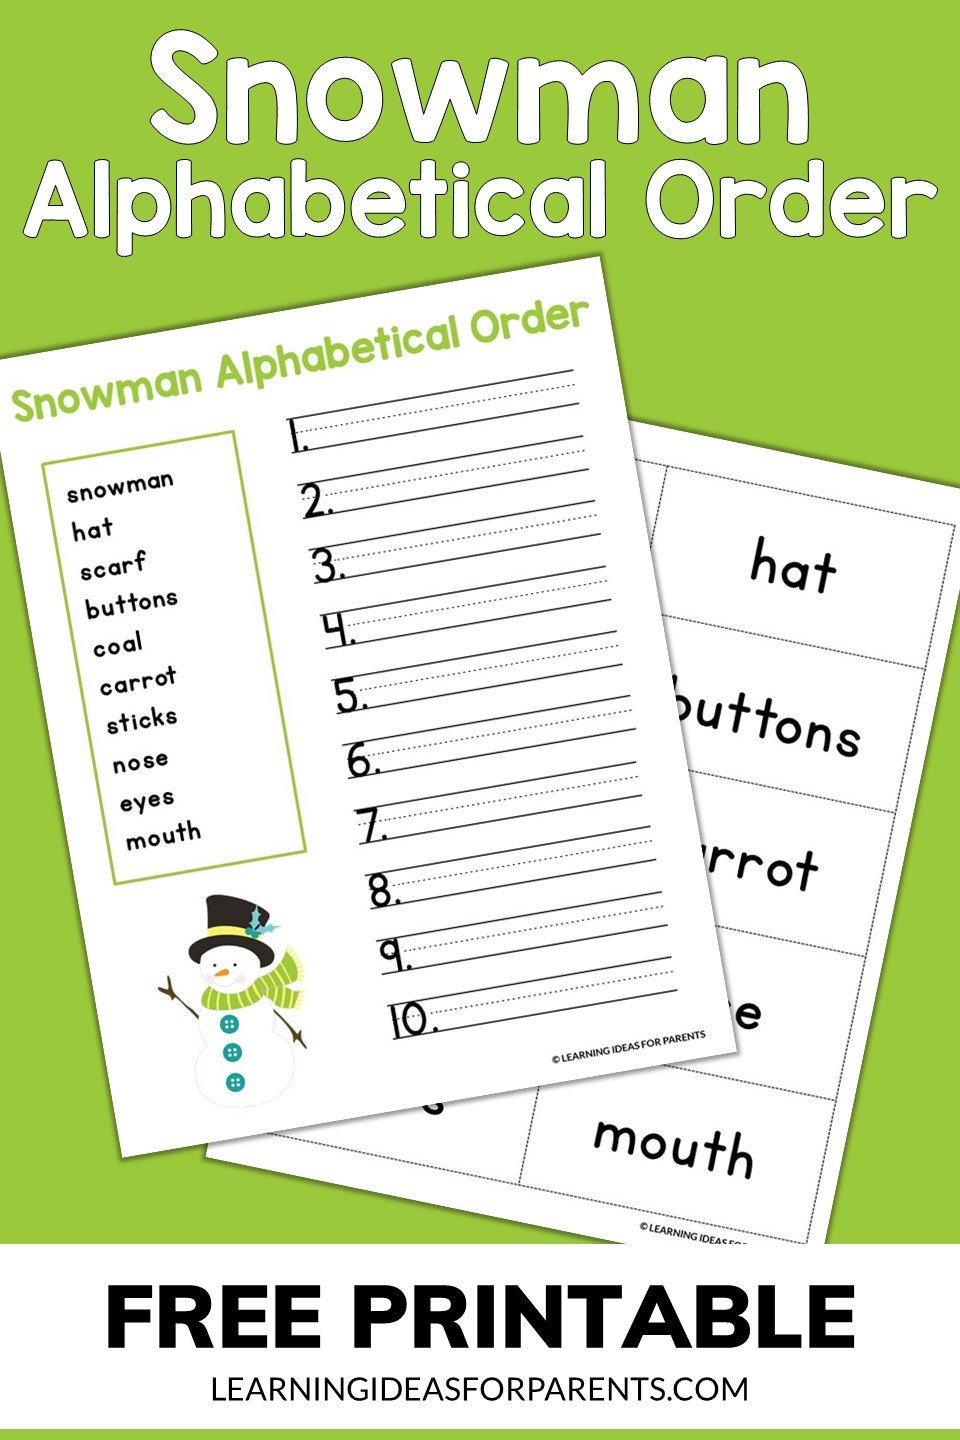 Free printable snowman alphabetical order activity